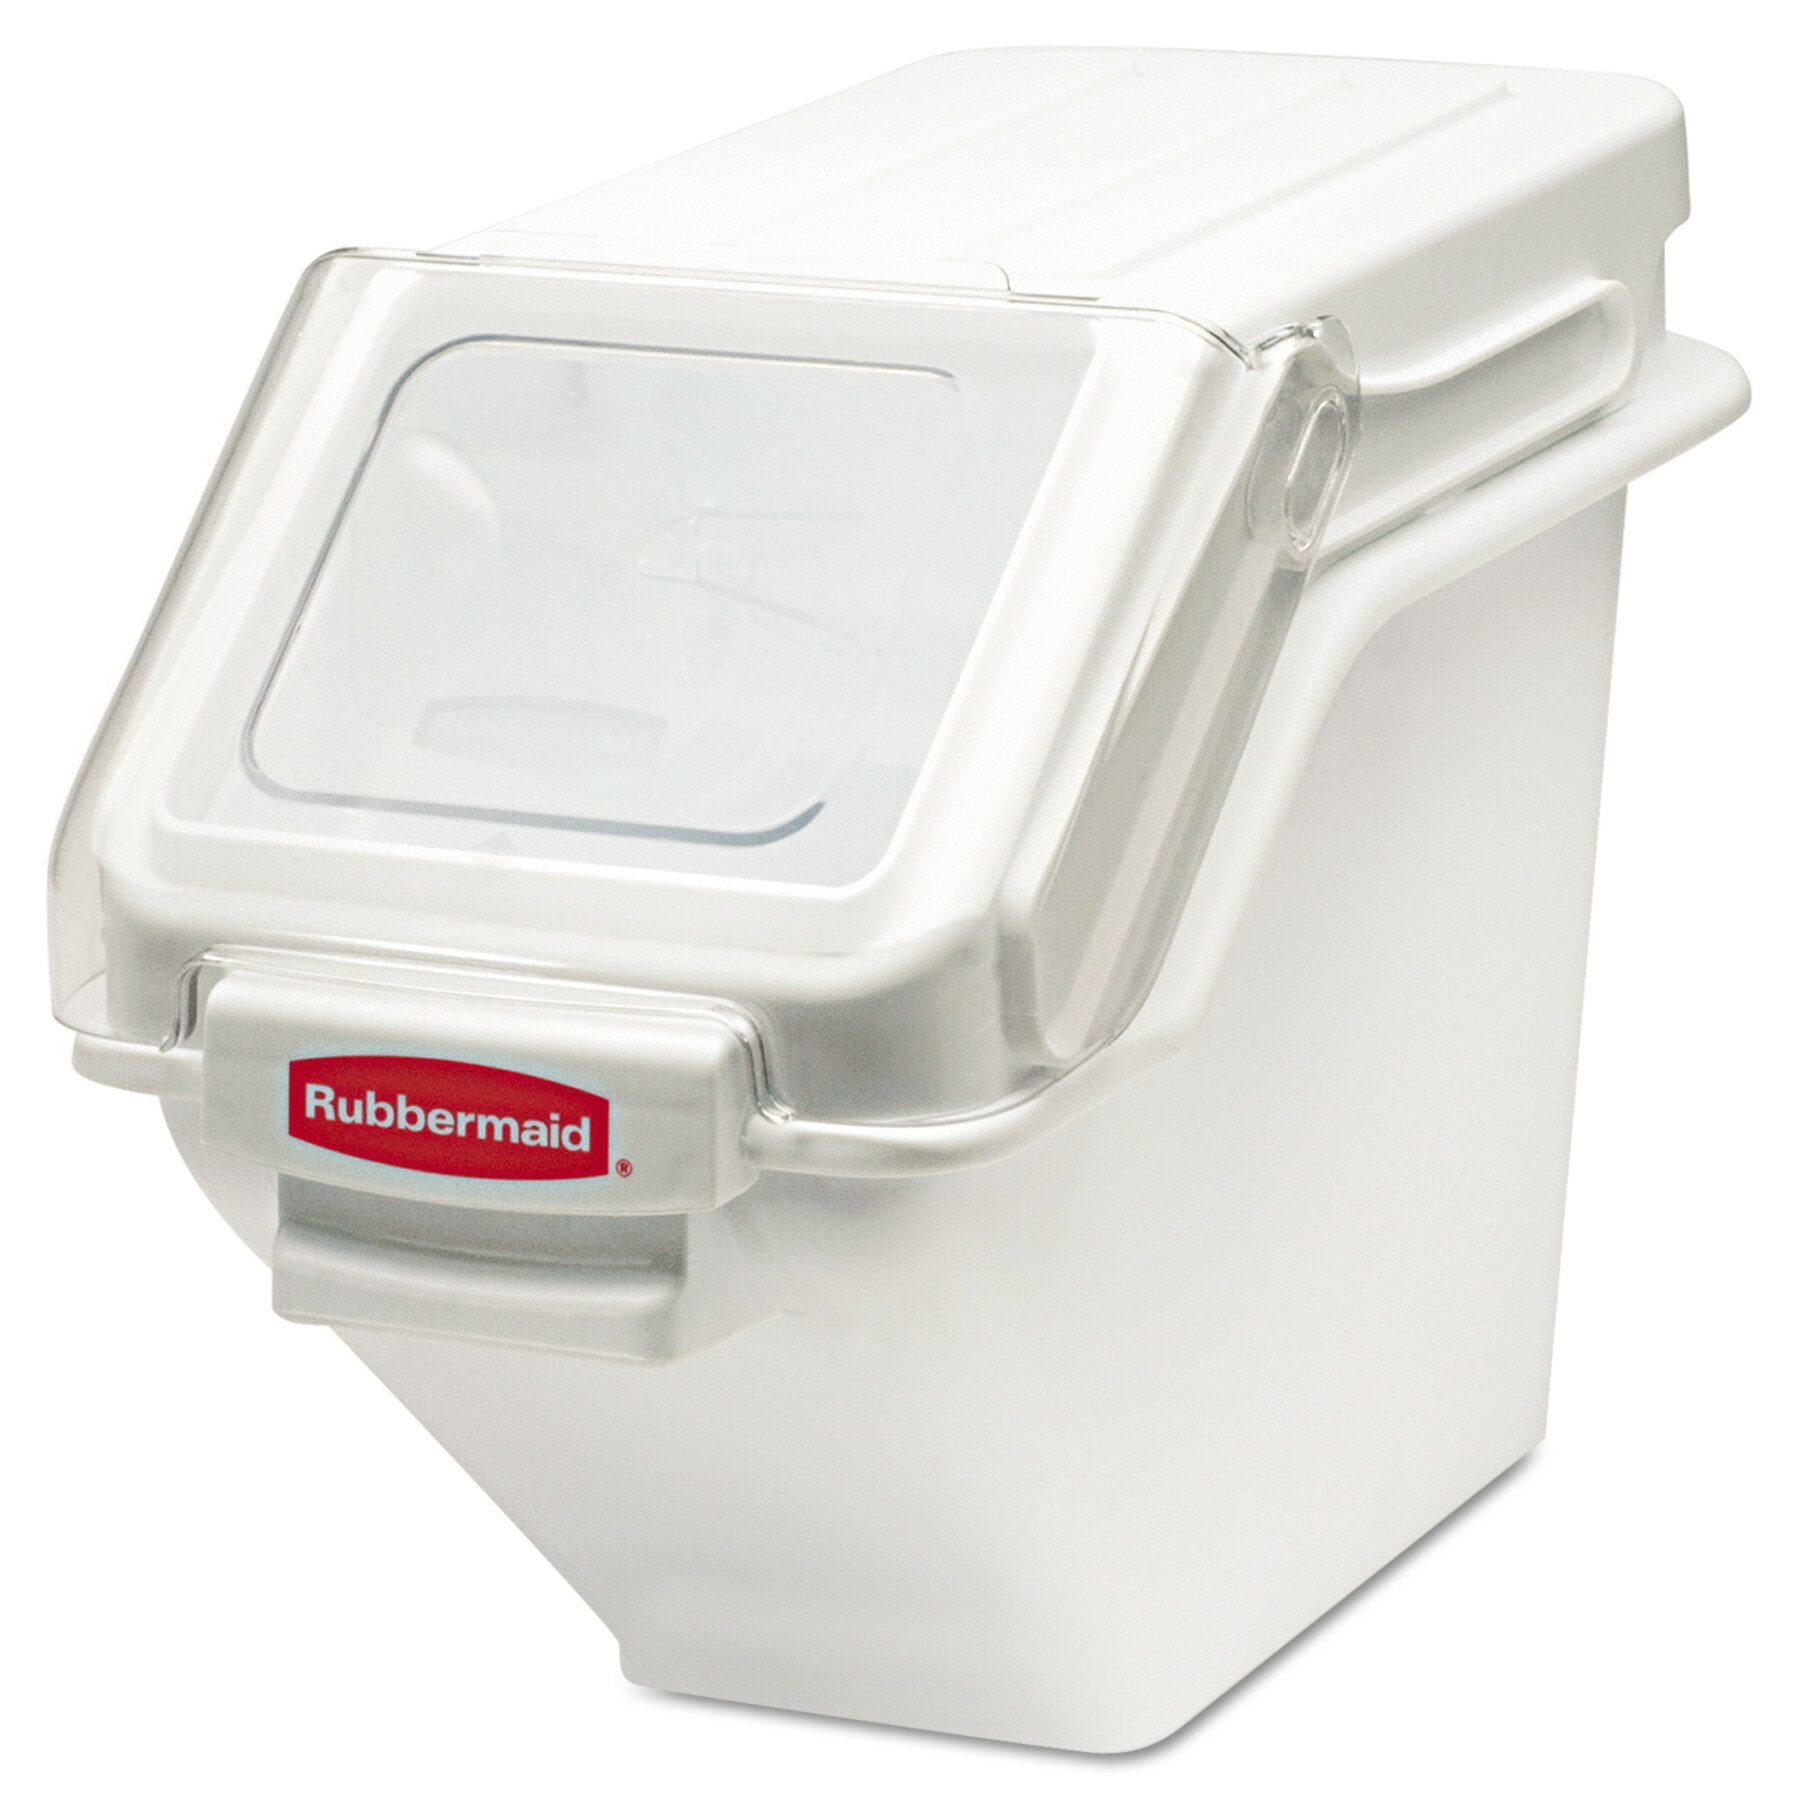 Rubbermaid Commercial Products Prosave Shelf Ingredient Bin 800 Oz